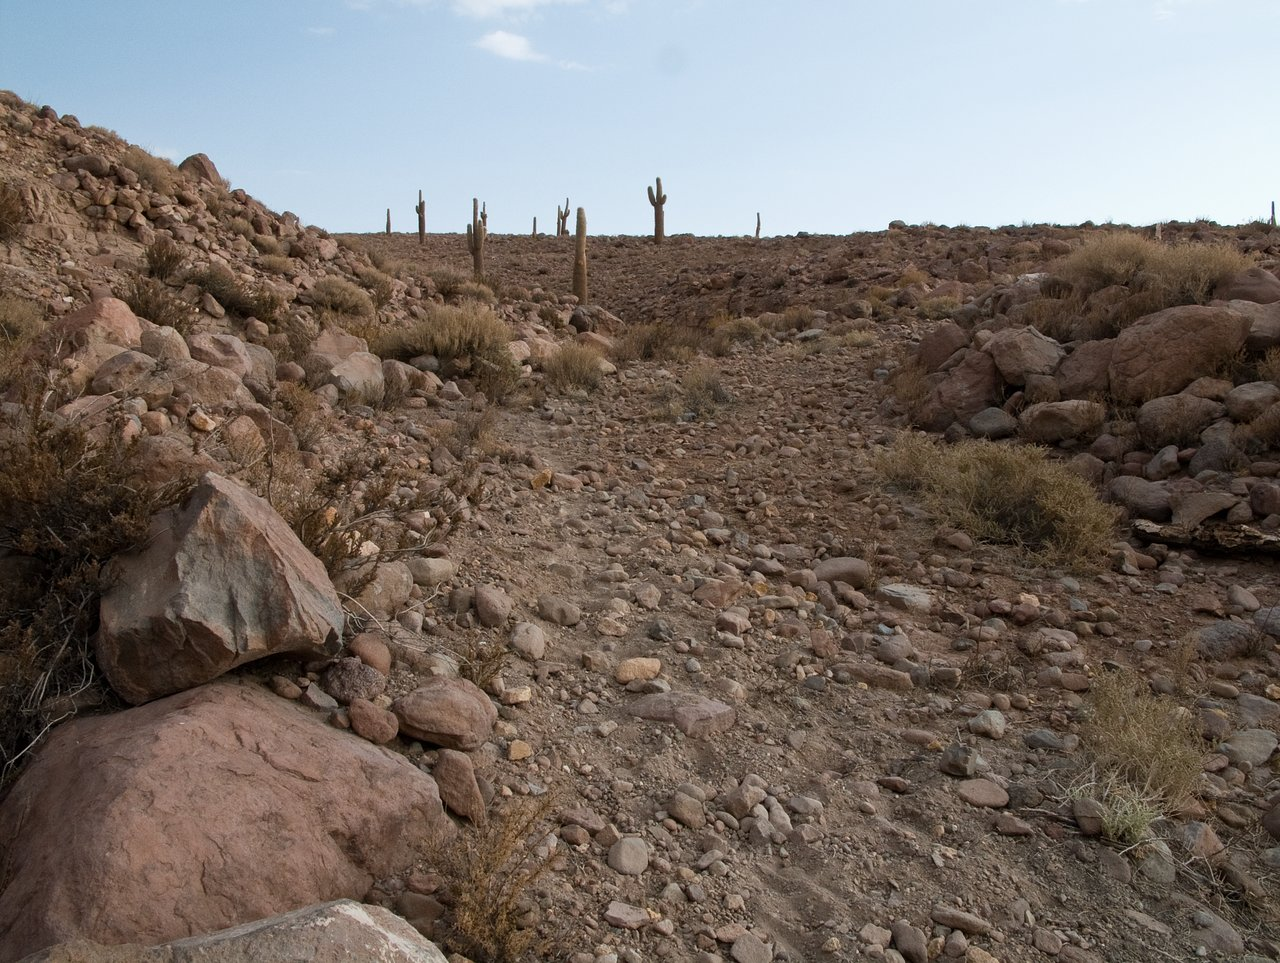 Giant cacti at the ALMA site